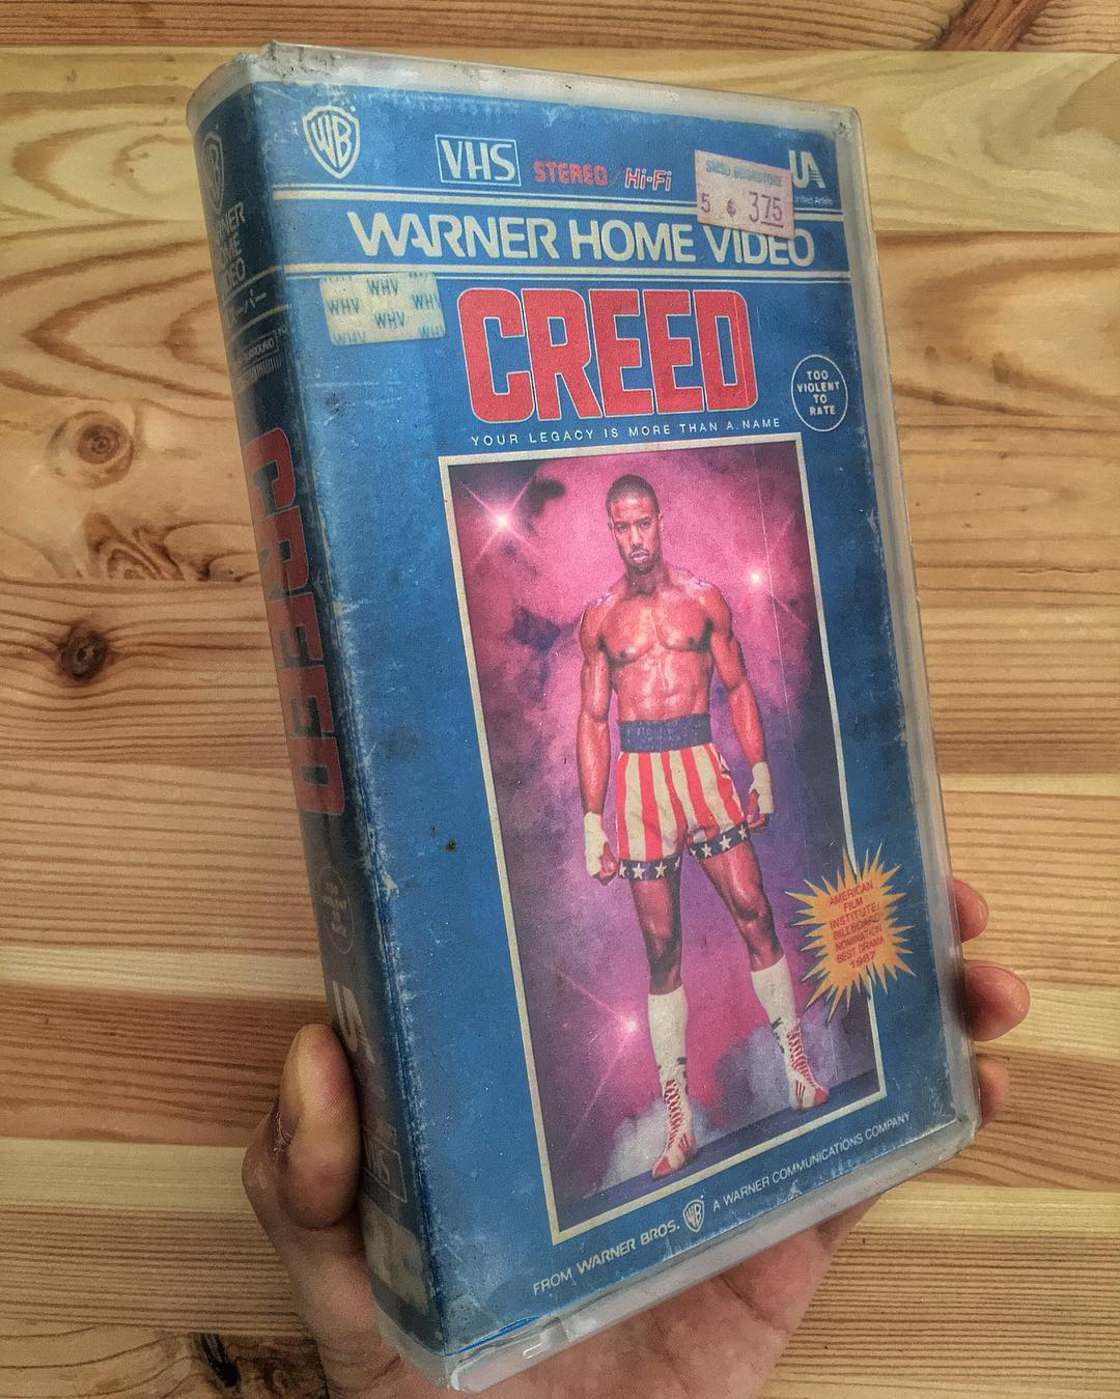 Modern movies and series as VHS tapes